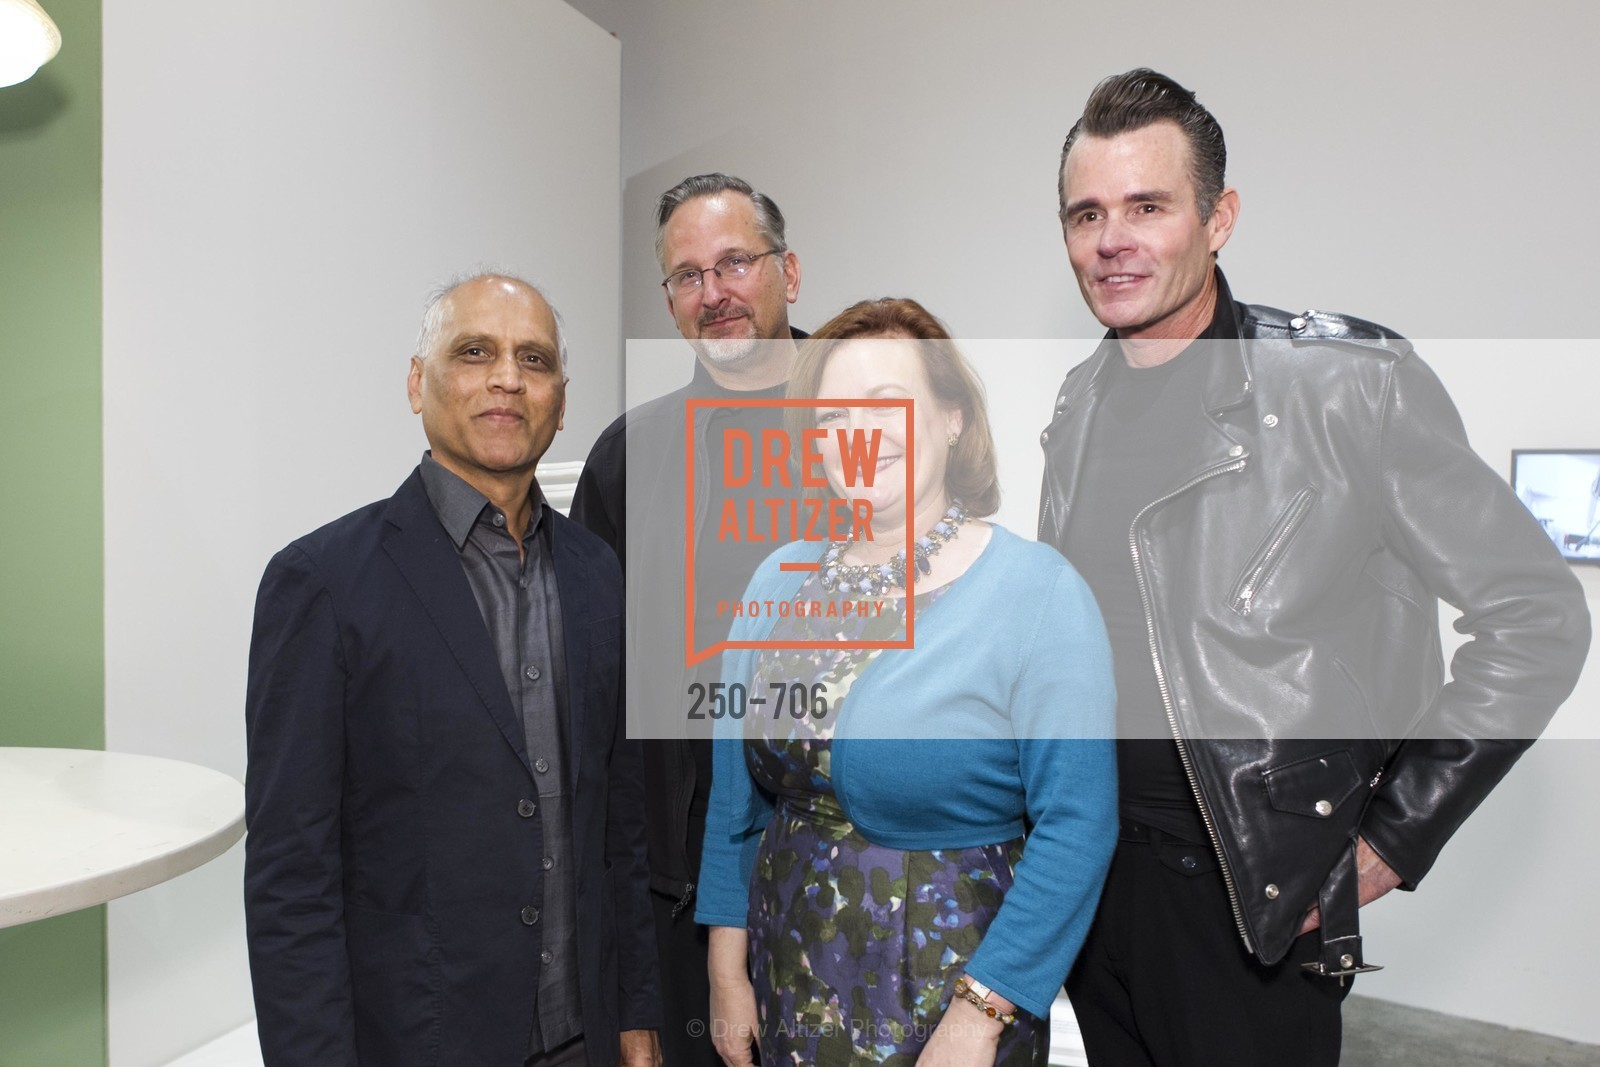 Zahid Sardar, Mark Macy, Jennifer Raiser, Craig Walters, Exhibit Opening at the MUSEUM OF CRAFT AND DESIGN - Hands Off: New Dutch Design at the Confluence of Technology & Craft, US, May 7th, 2015,Drew Altizer, Drew Altizer Photography, full-service agency, private events, San Francisco photographer, photographer california